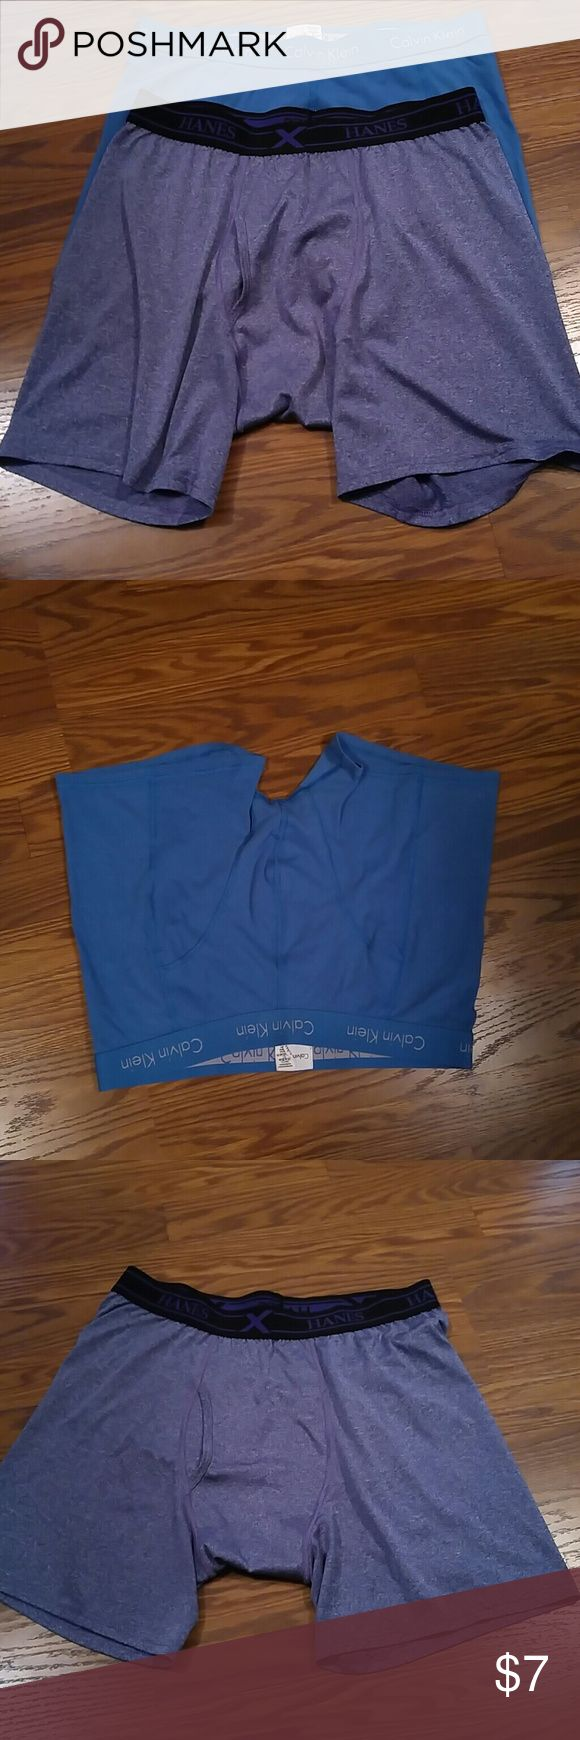 Two Pairs of Men Underwear ***  NWOT*** One by Hanes and one by Calvin Klein. Underwear & Socks Briefs